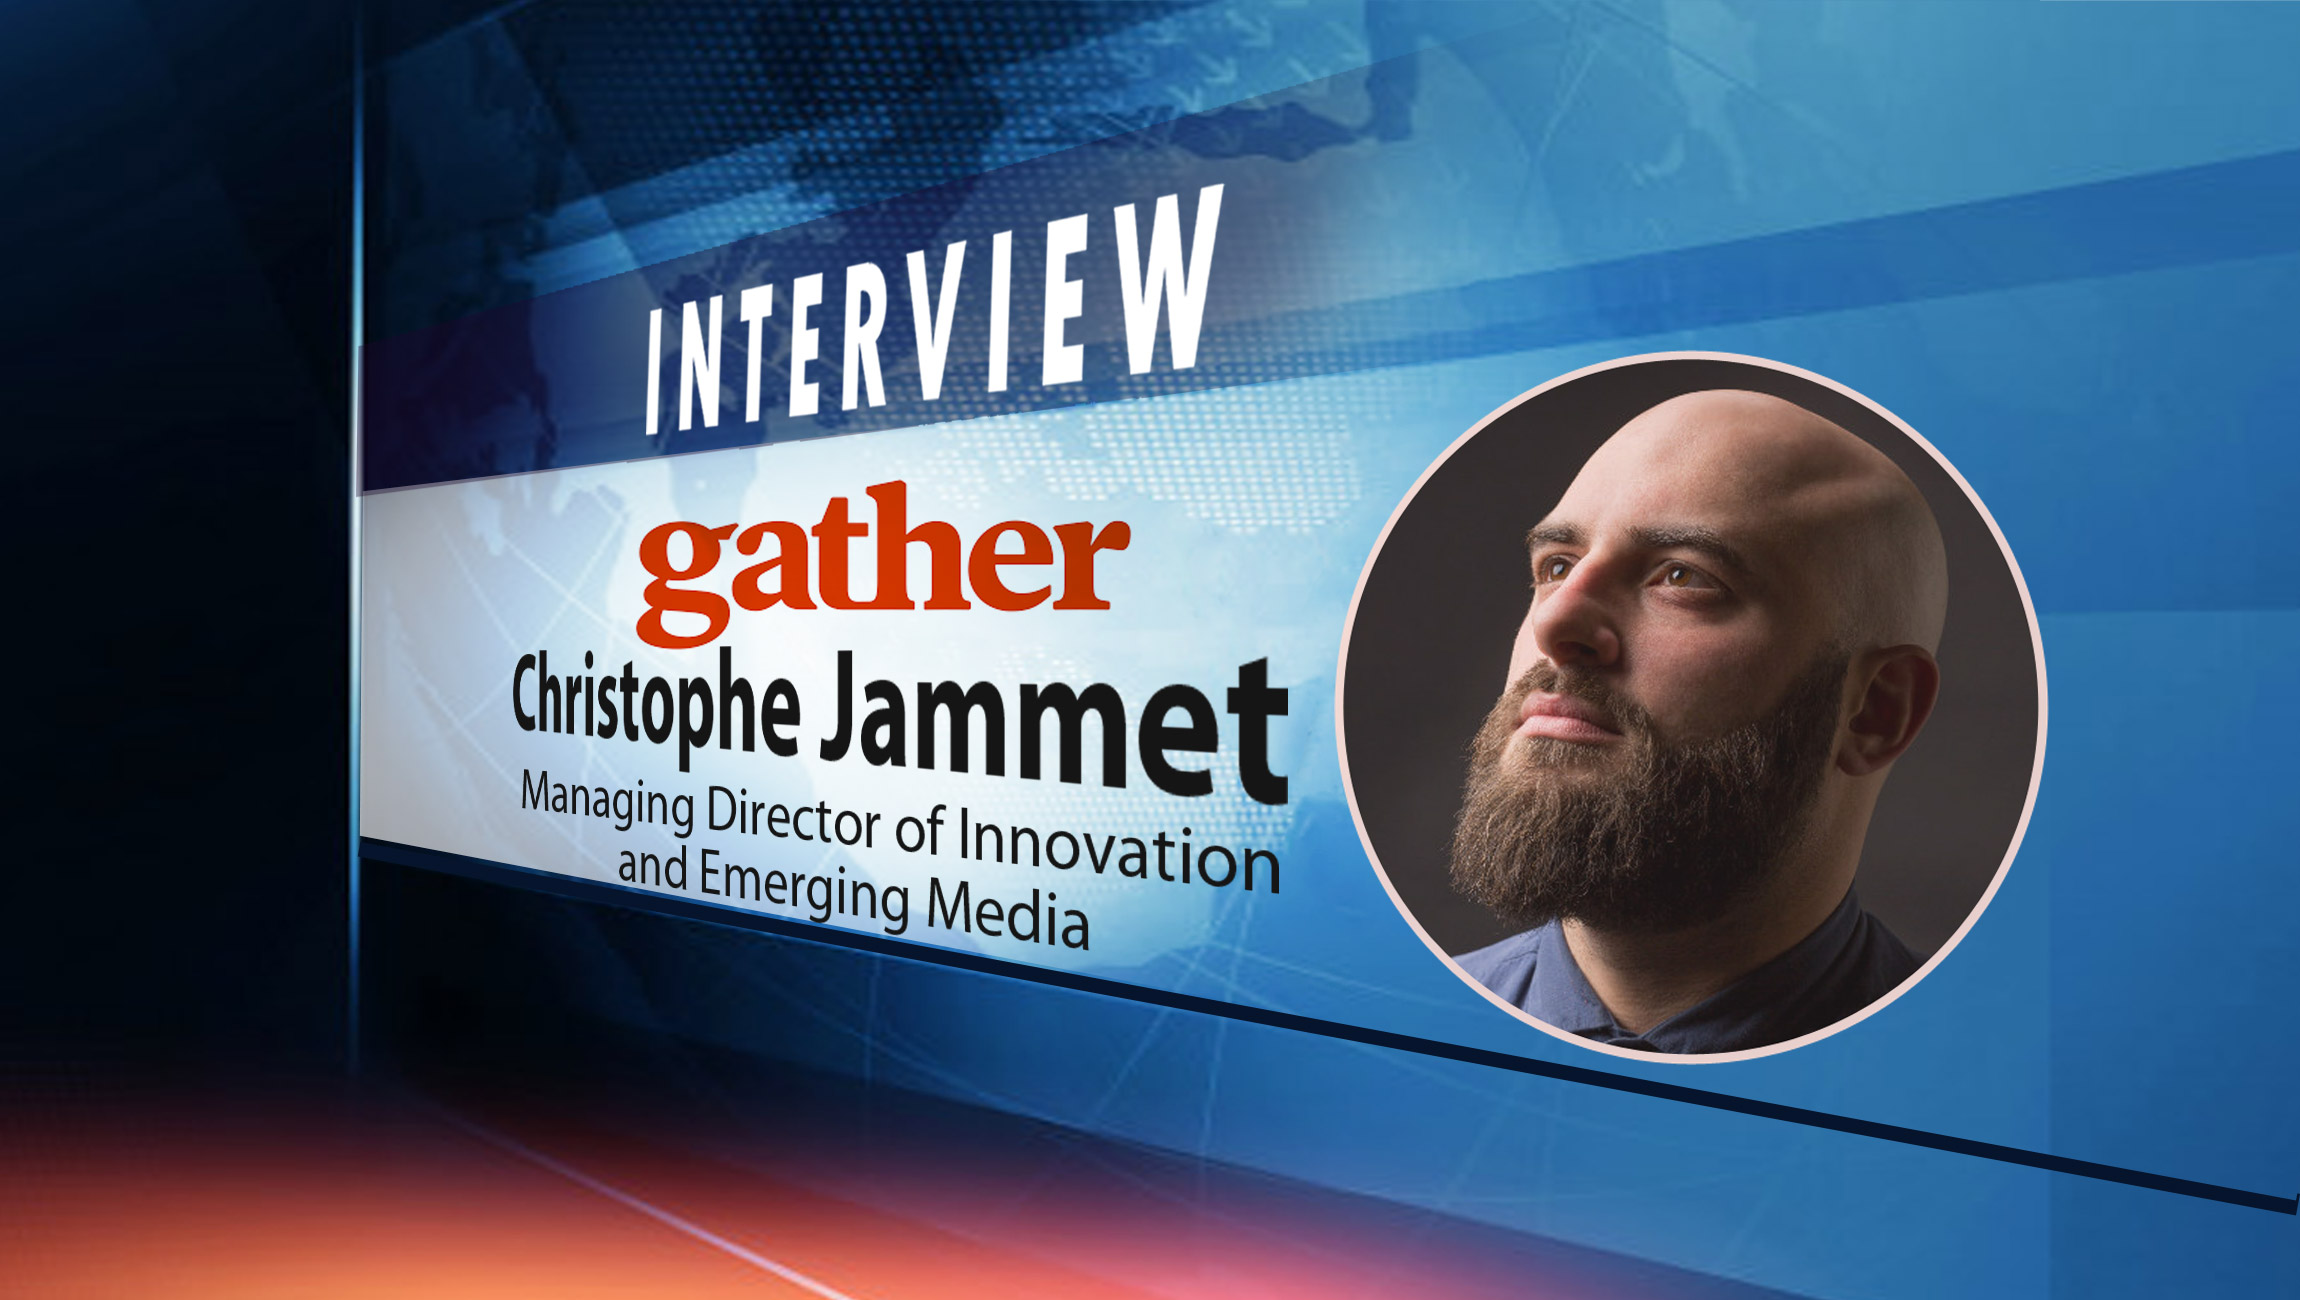 SalesTechStar Interview with Christophe Jammet, Managing Director of Innovation and Emerging Media at Gather